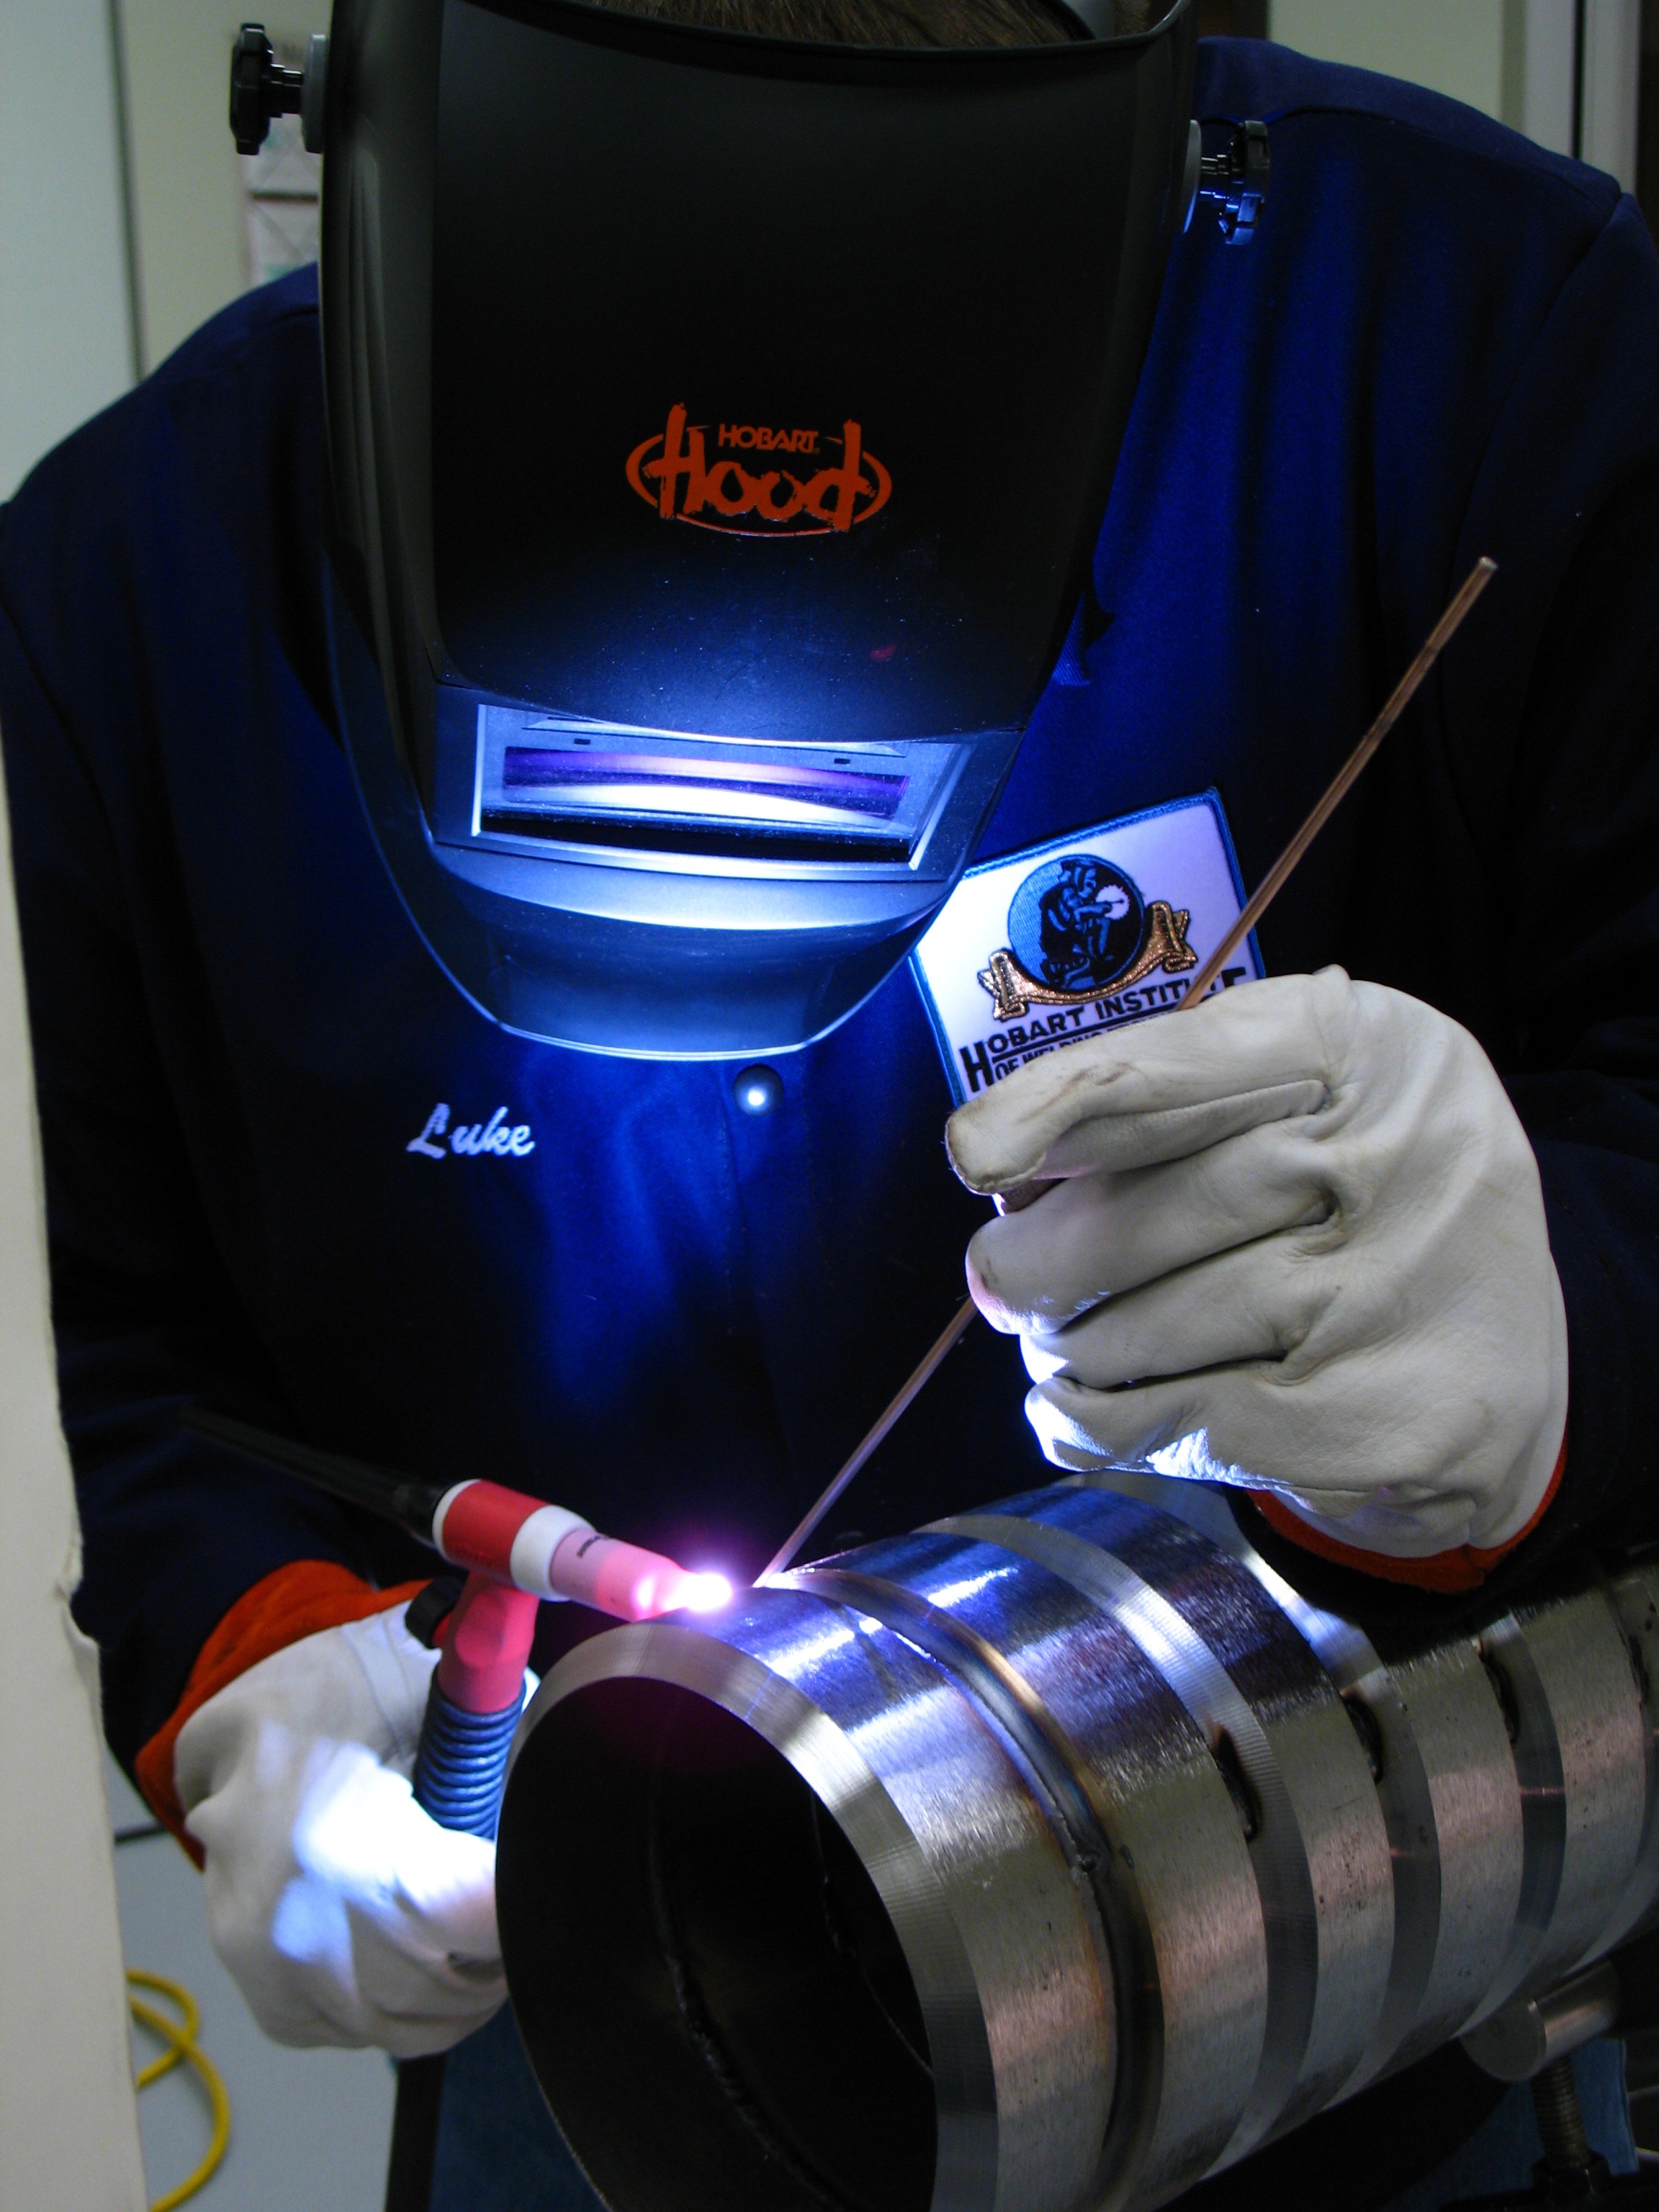 "Gas Tungsten Arc Welding 6"" Pipe - Hobart Institute of Welding ...: https://www.welding.org/product/gas-tungsten-arc-welding-6-pipe"